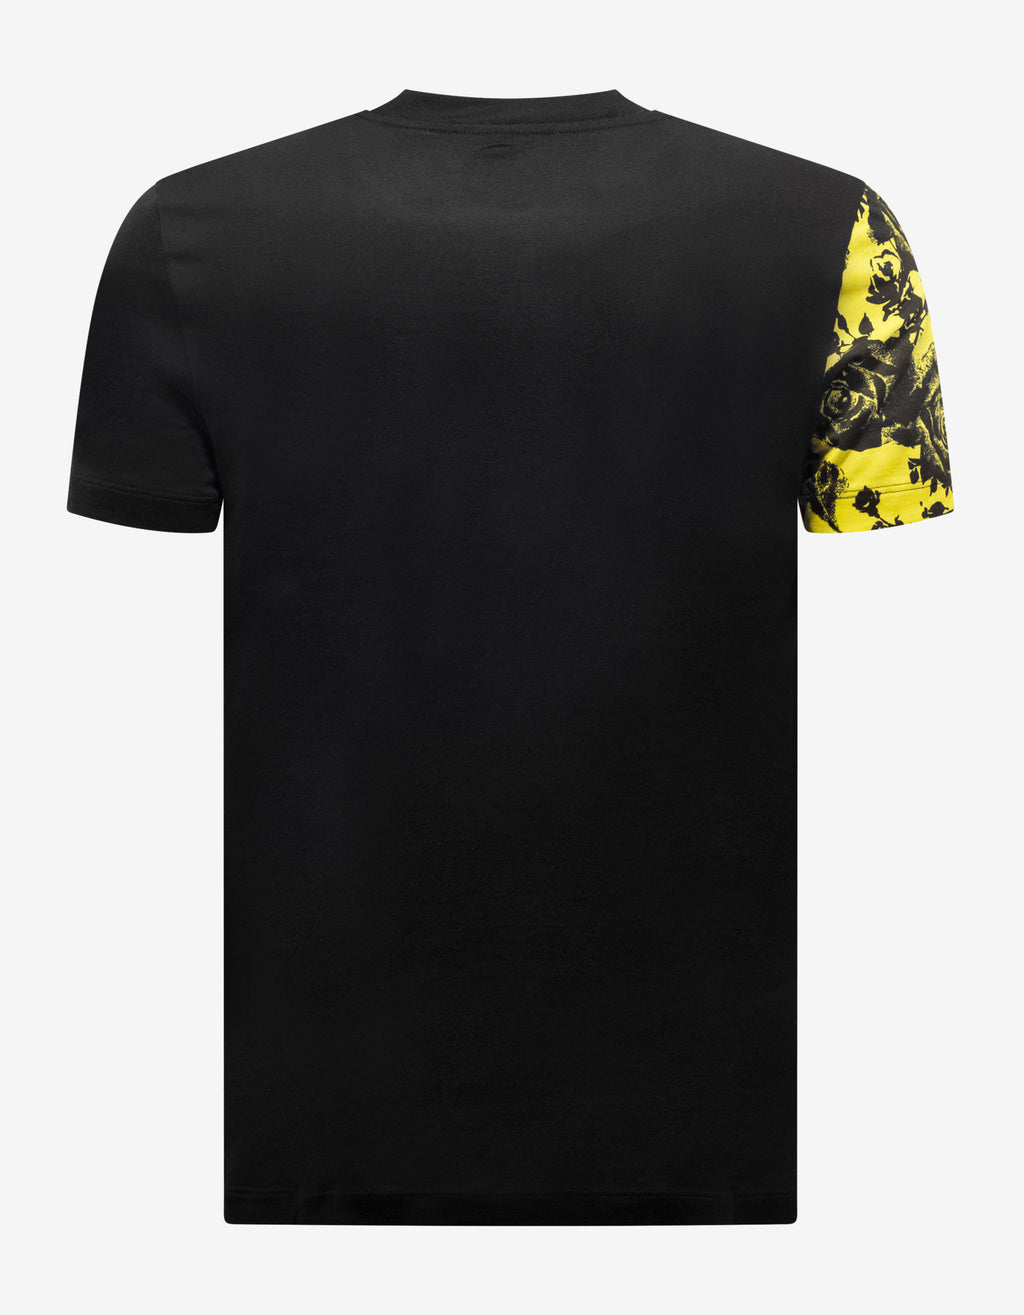 Black Multi-Graphic Insert T-Shirt